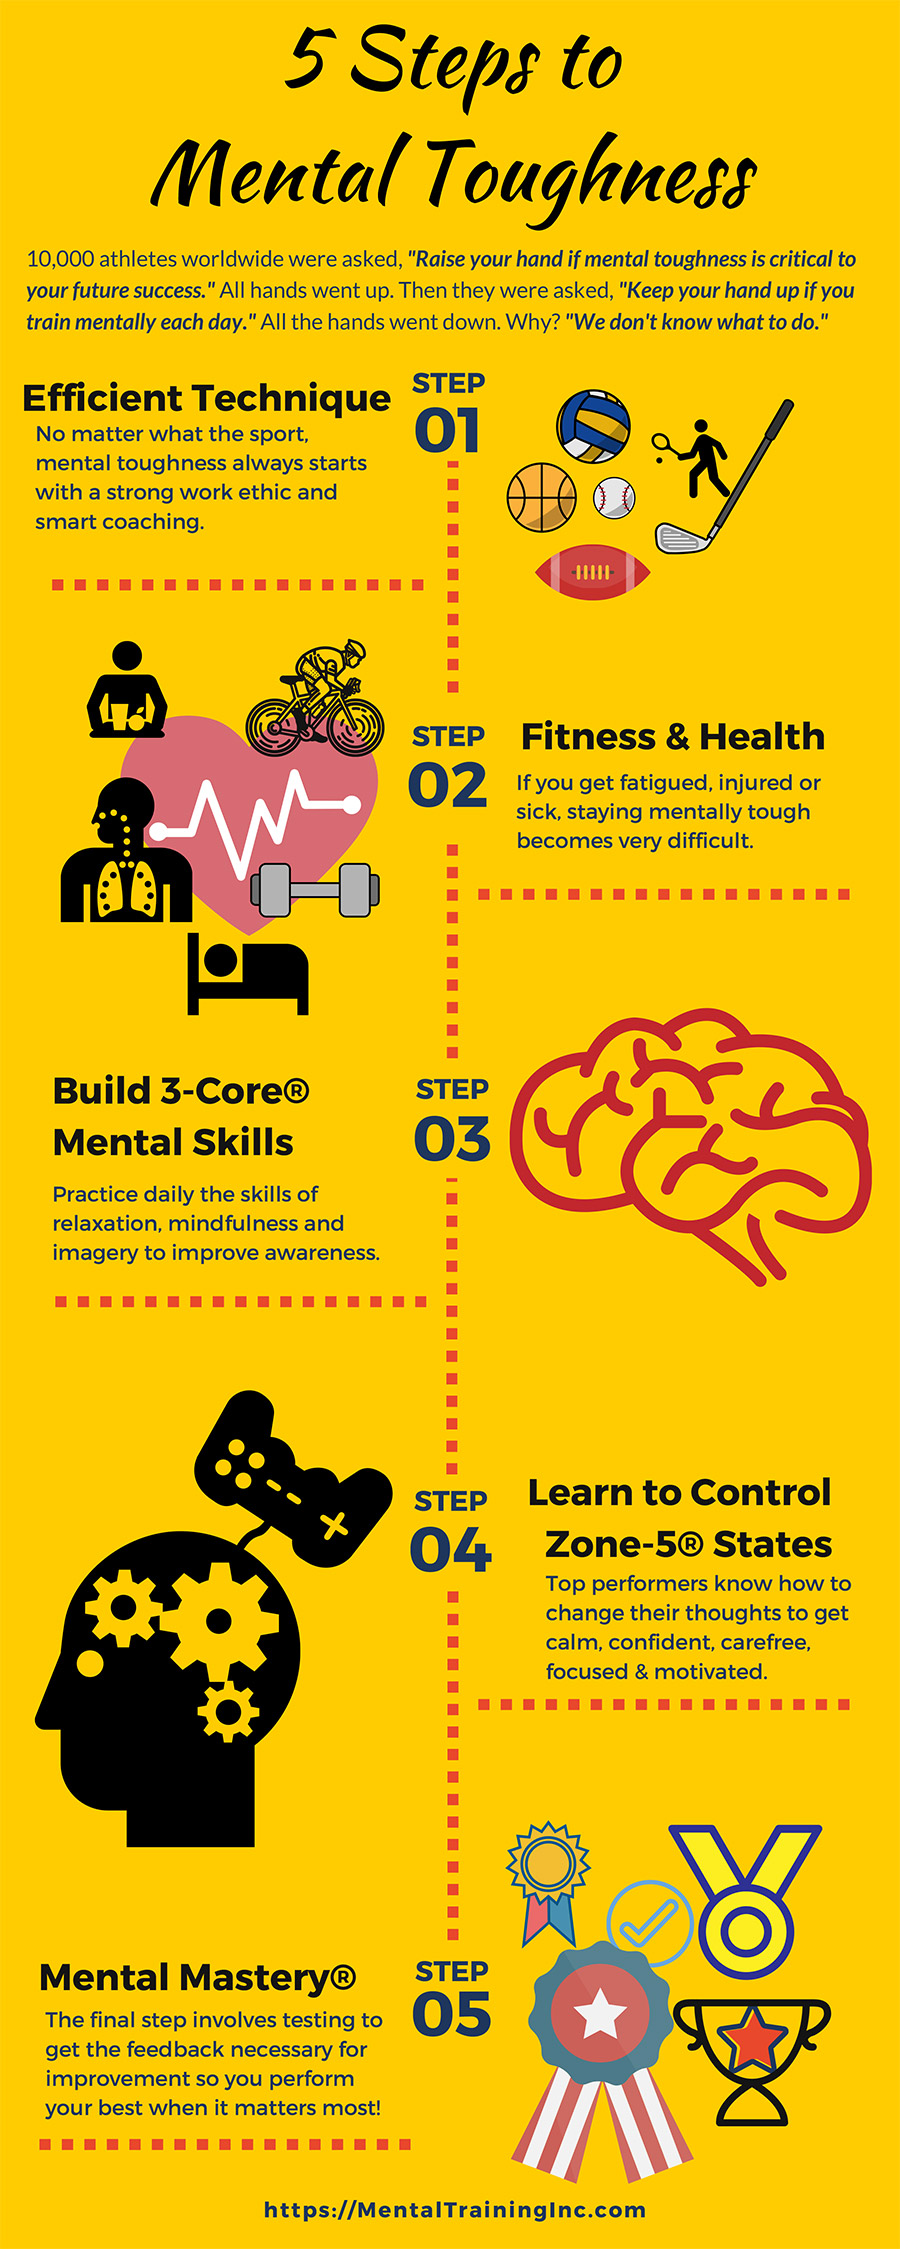 5-Steps-to-Mental-Toughness-Infographic